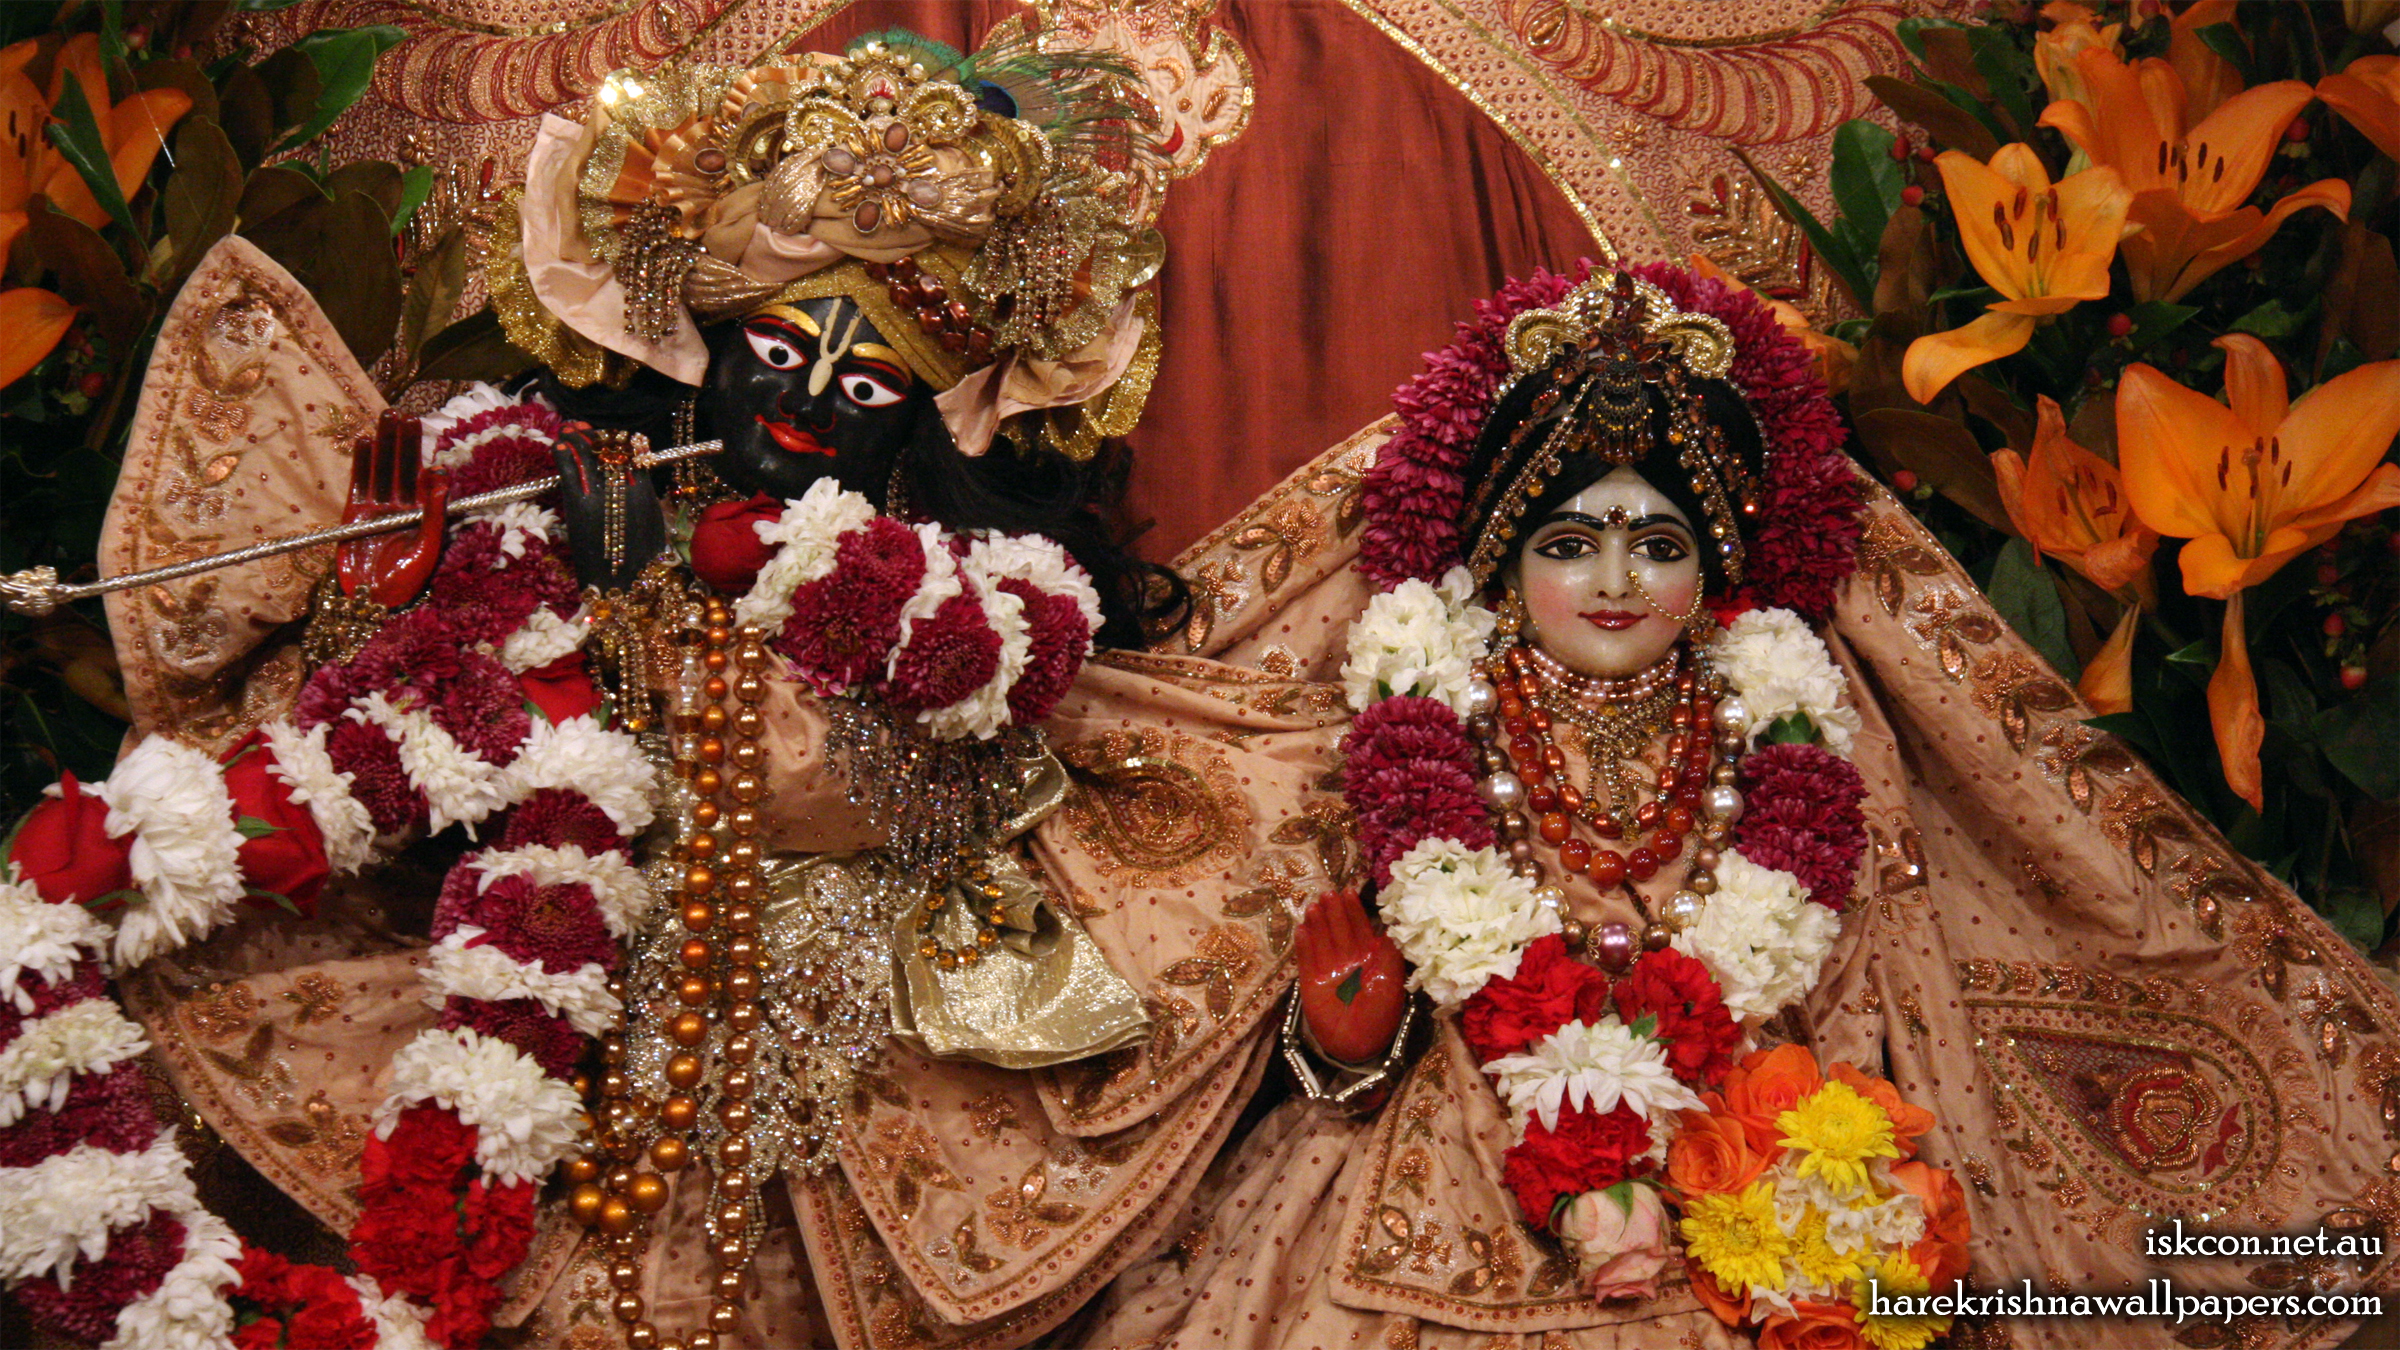 Sri Sri Radha Vallabh Close up Wallpaper (006) Size 2400x1350 Download